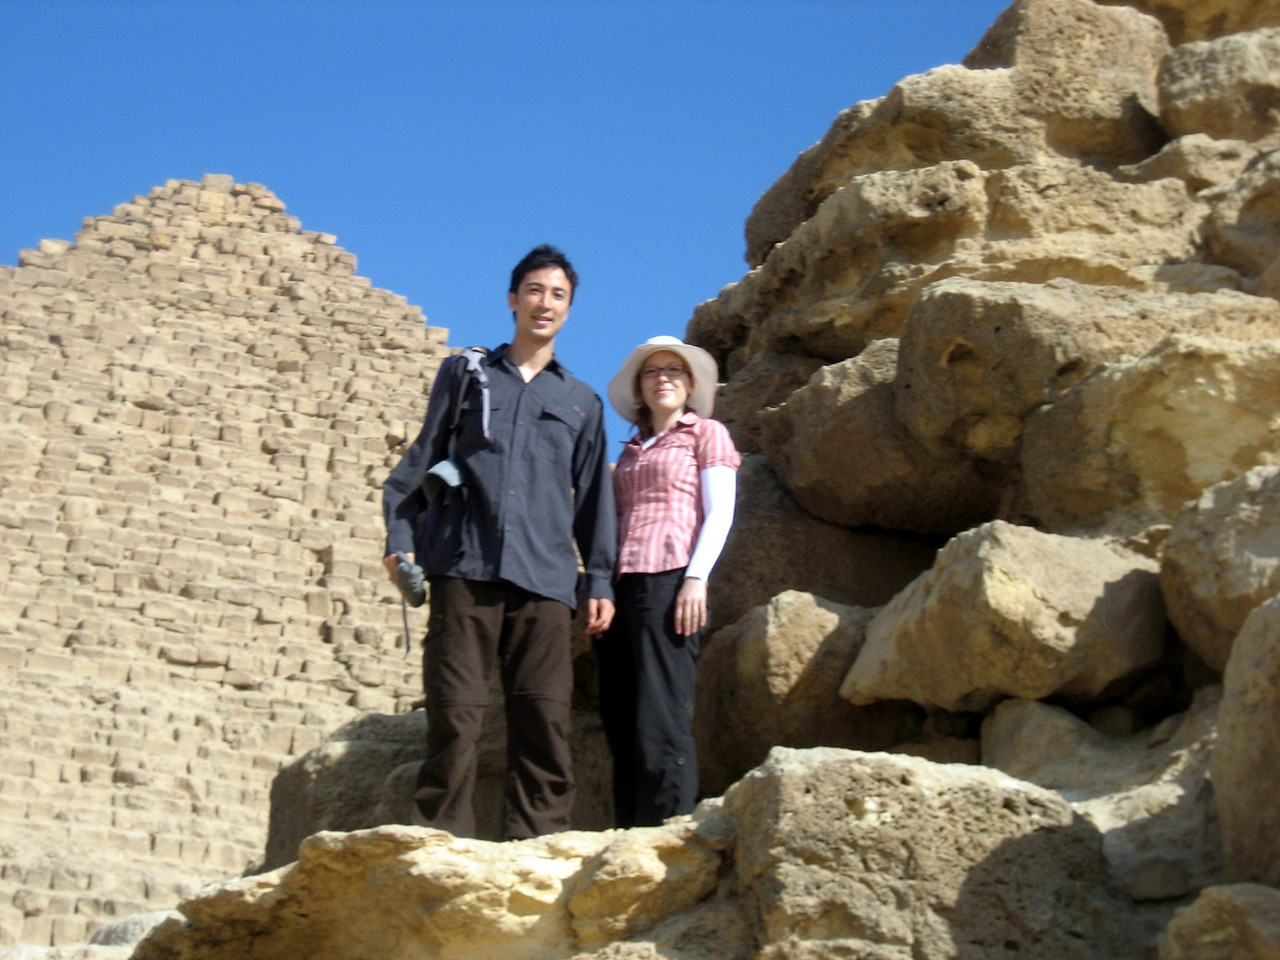 Looking around at some of the smaller pyramids at Giza